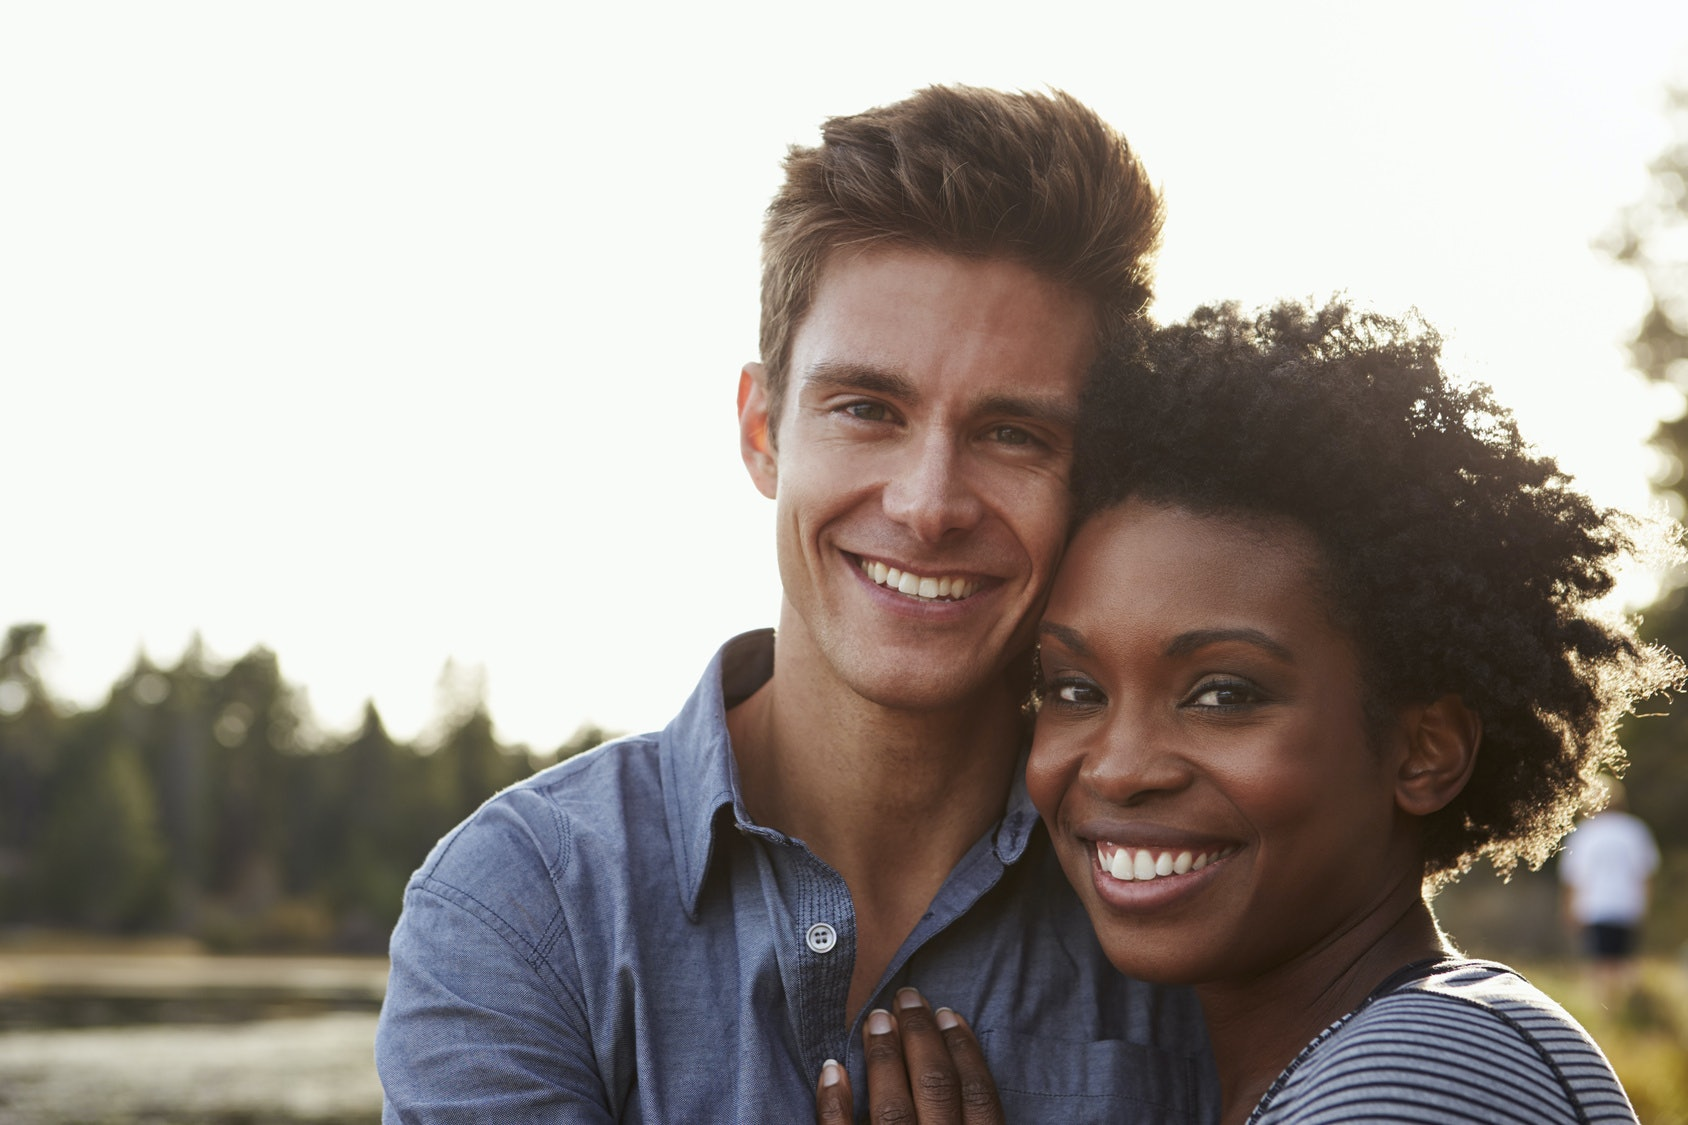 What to expect after 1 year of dating